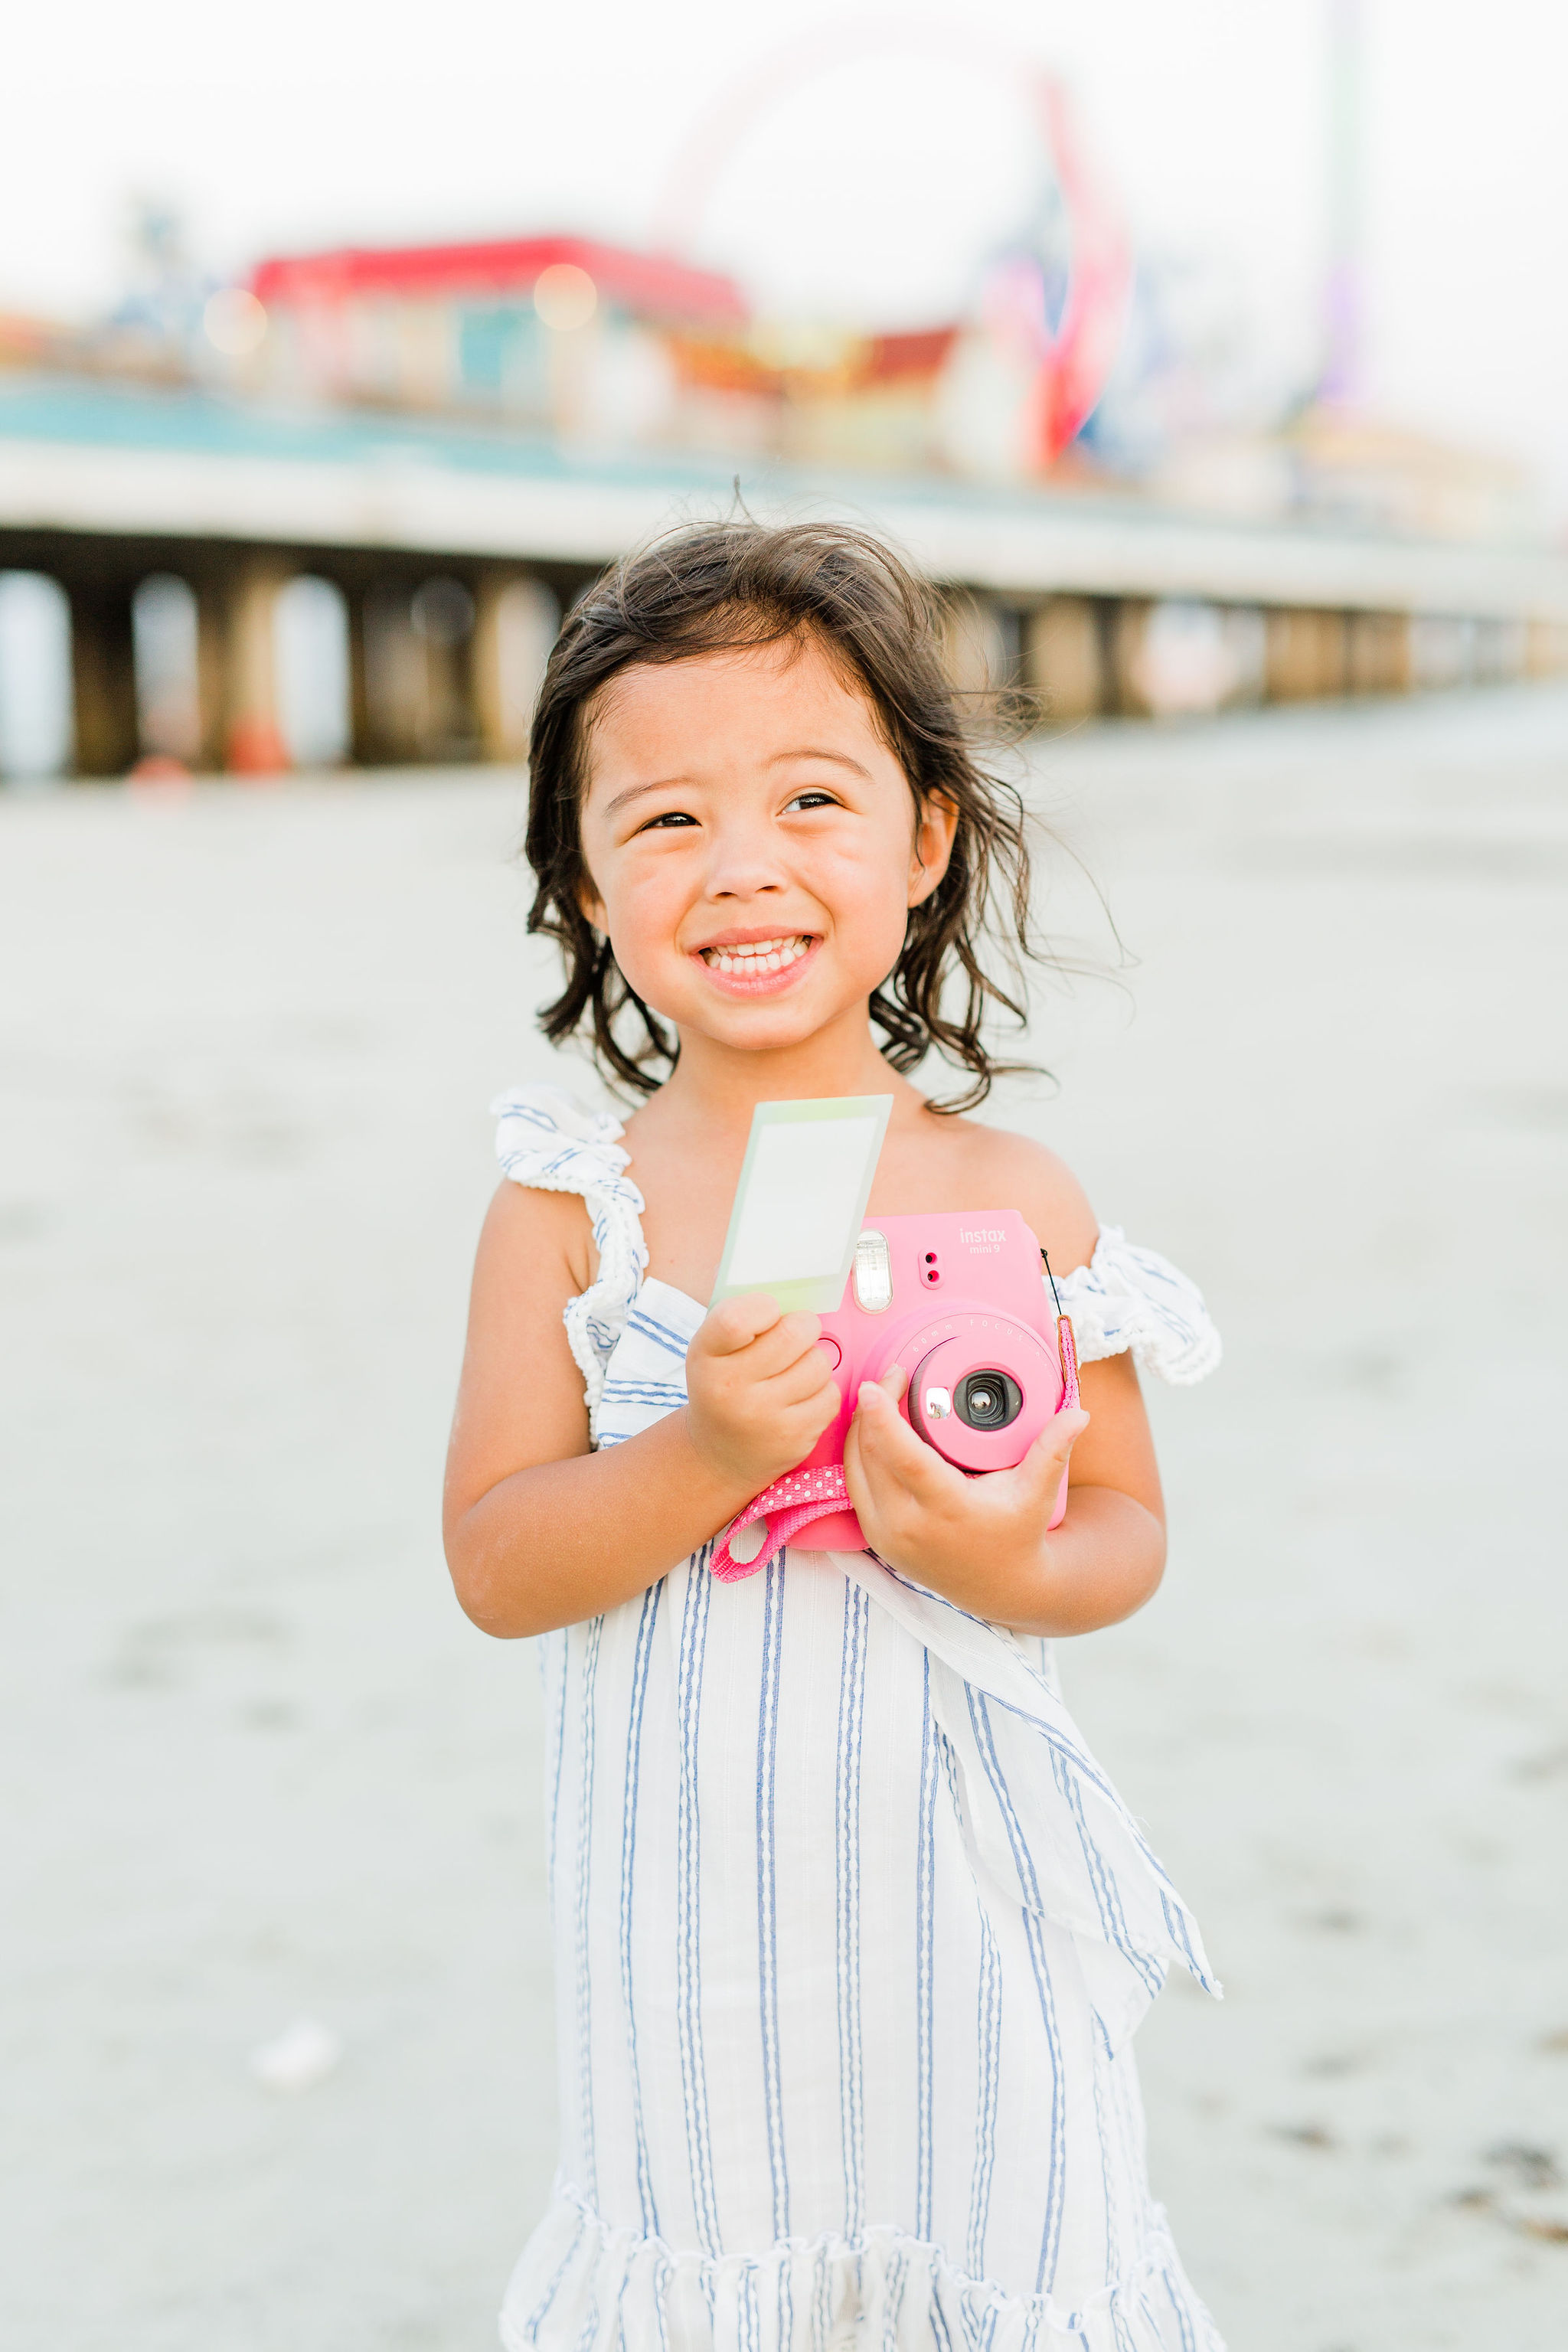 June 29th is National Camera Day and I want to help you capture all those priceless summer moments stress free! Whether you are on vacation with the family or enjoying an afternoon at the pool, there will certainly be gramable moments you want to capture with your family! But if you have ever tried to take a photo of a wild 3 year old, you know it's not a simple feat! I'm sharing my 3 stress free photo tips with kiddos to capture your authentic summer!